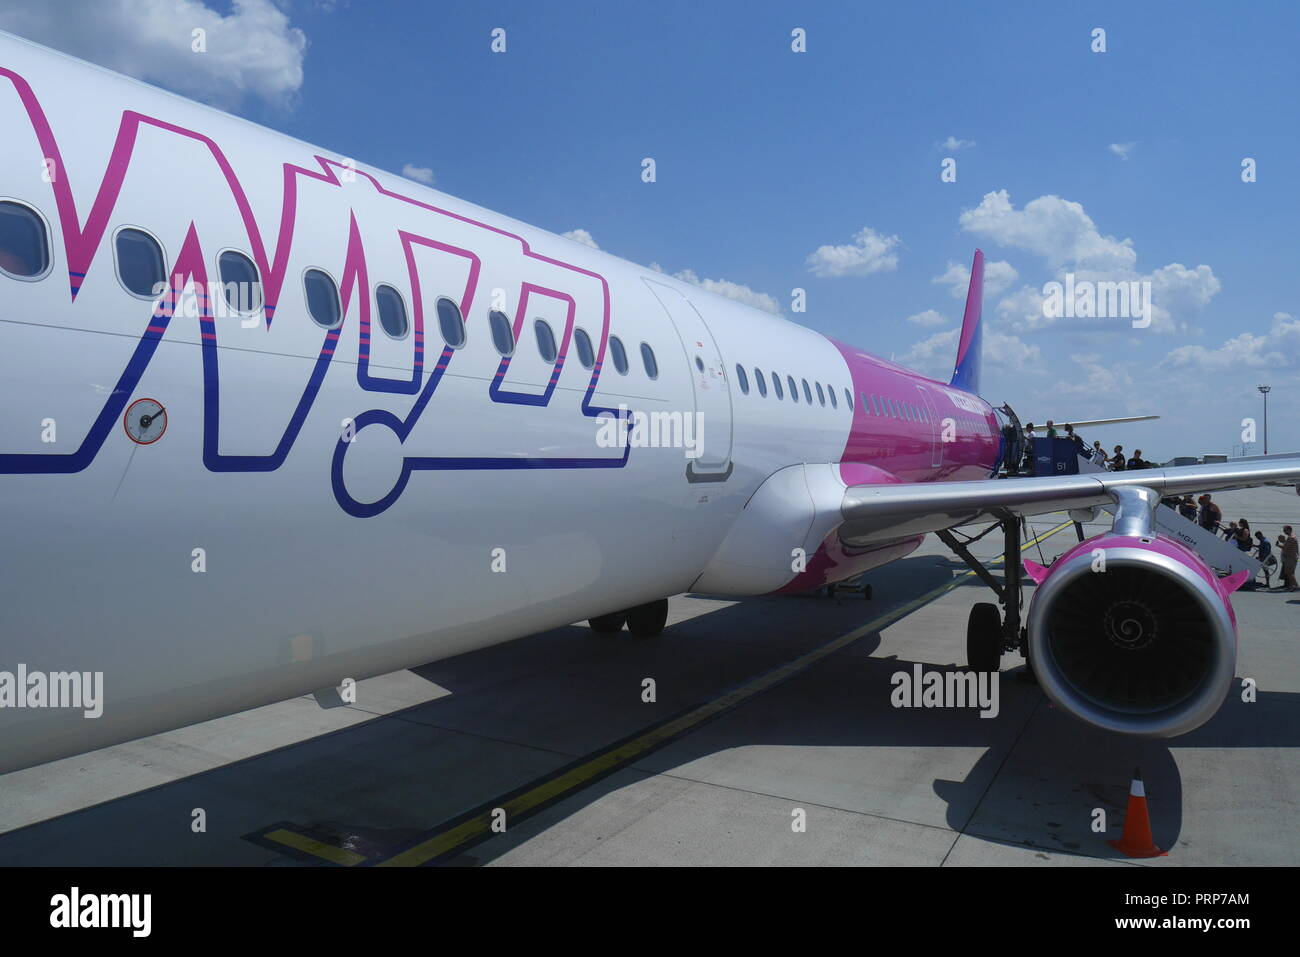 Wizz Air Airbus A320 200 boarding at Budapest Ferihegy Airport, Budapest, Hungary - Stock Image